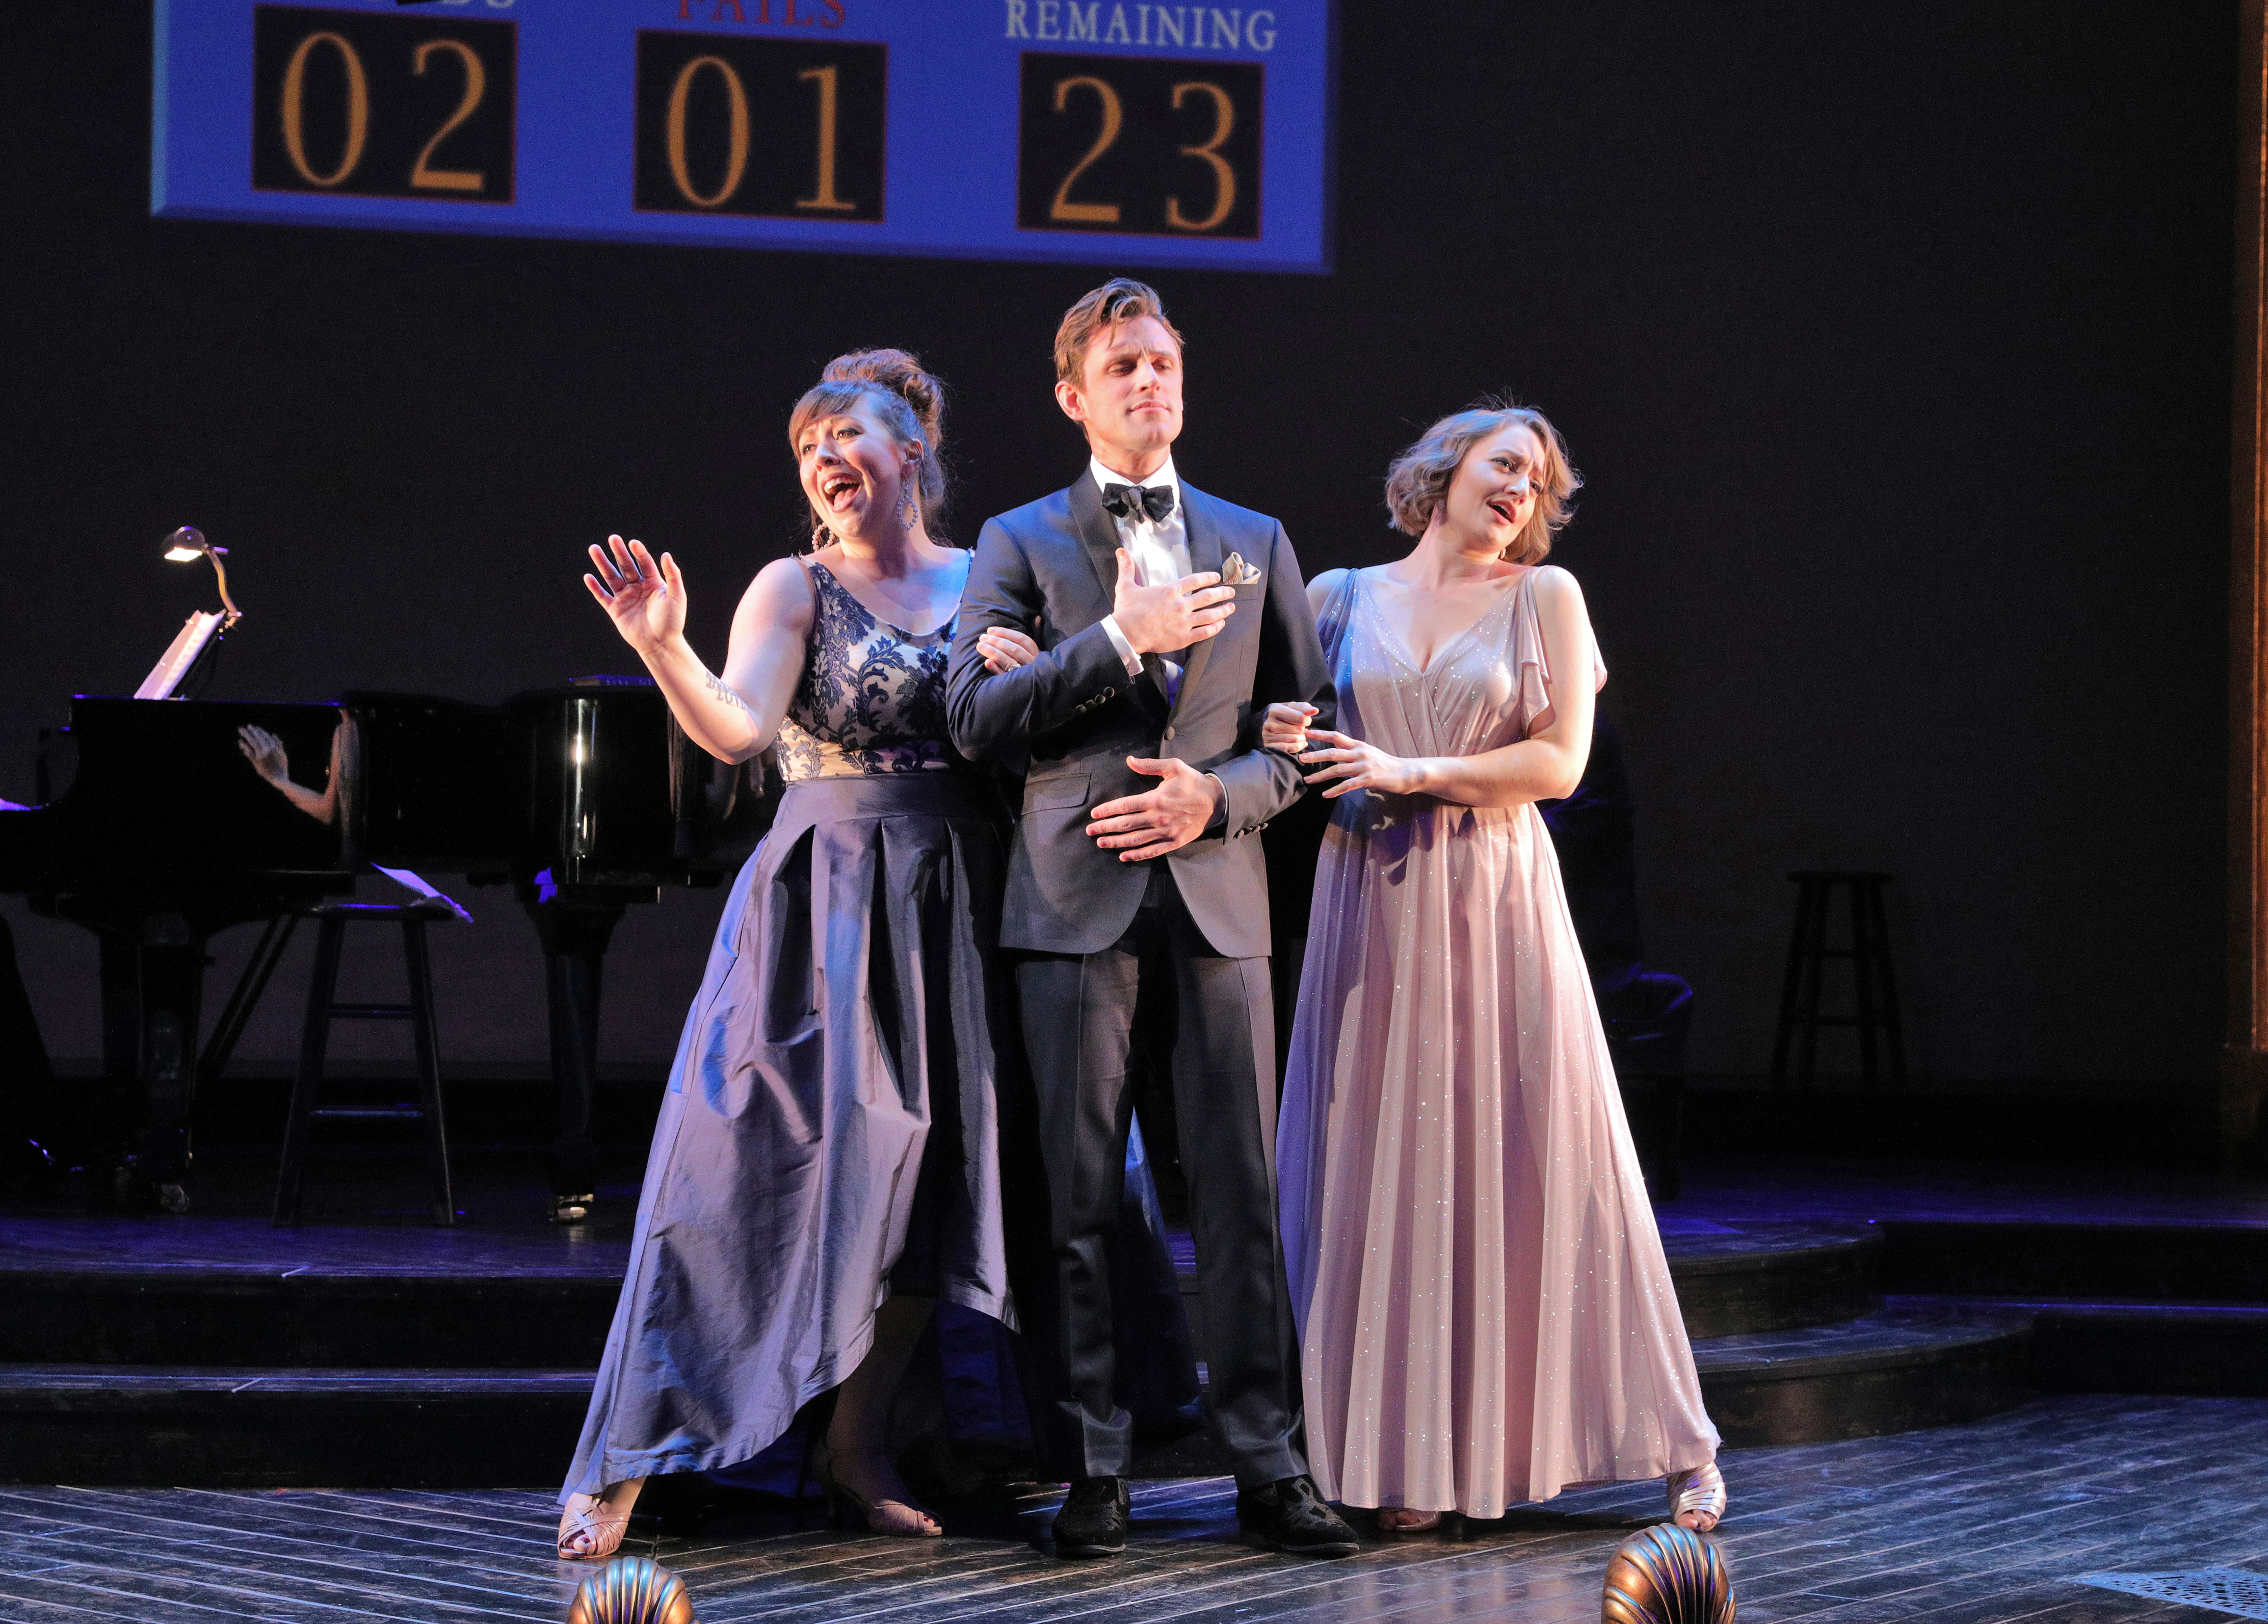 BWW Review: SIDE BY SIDE BY SONDHEIM at Kansas City Repertory Theatre